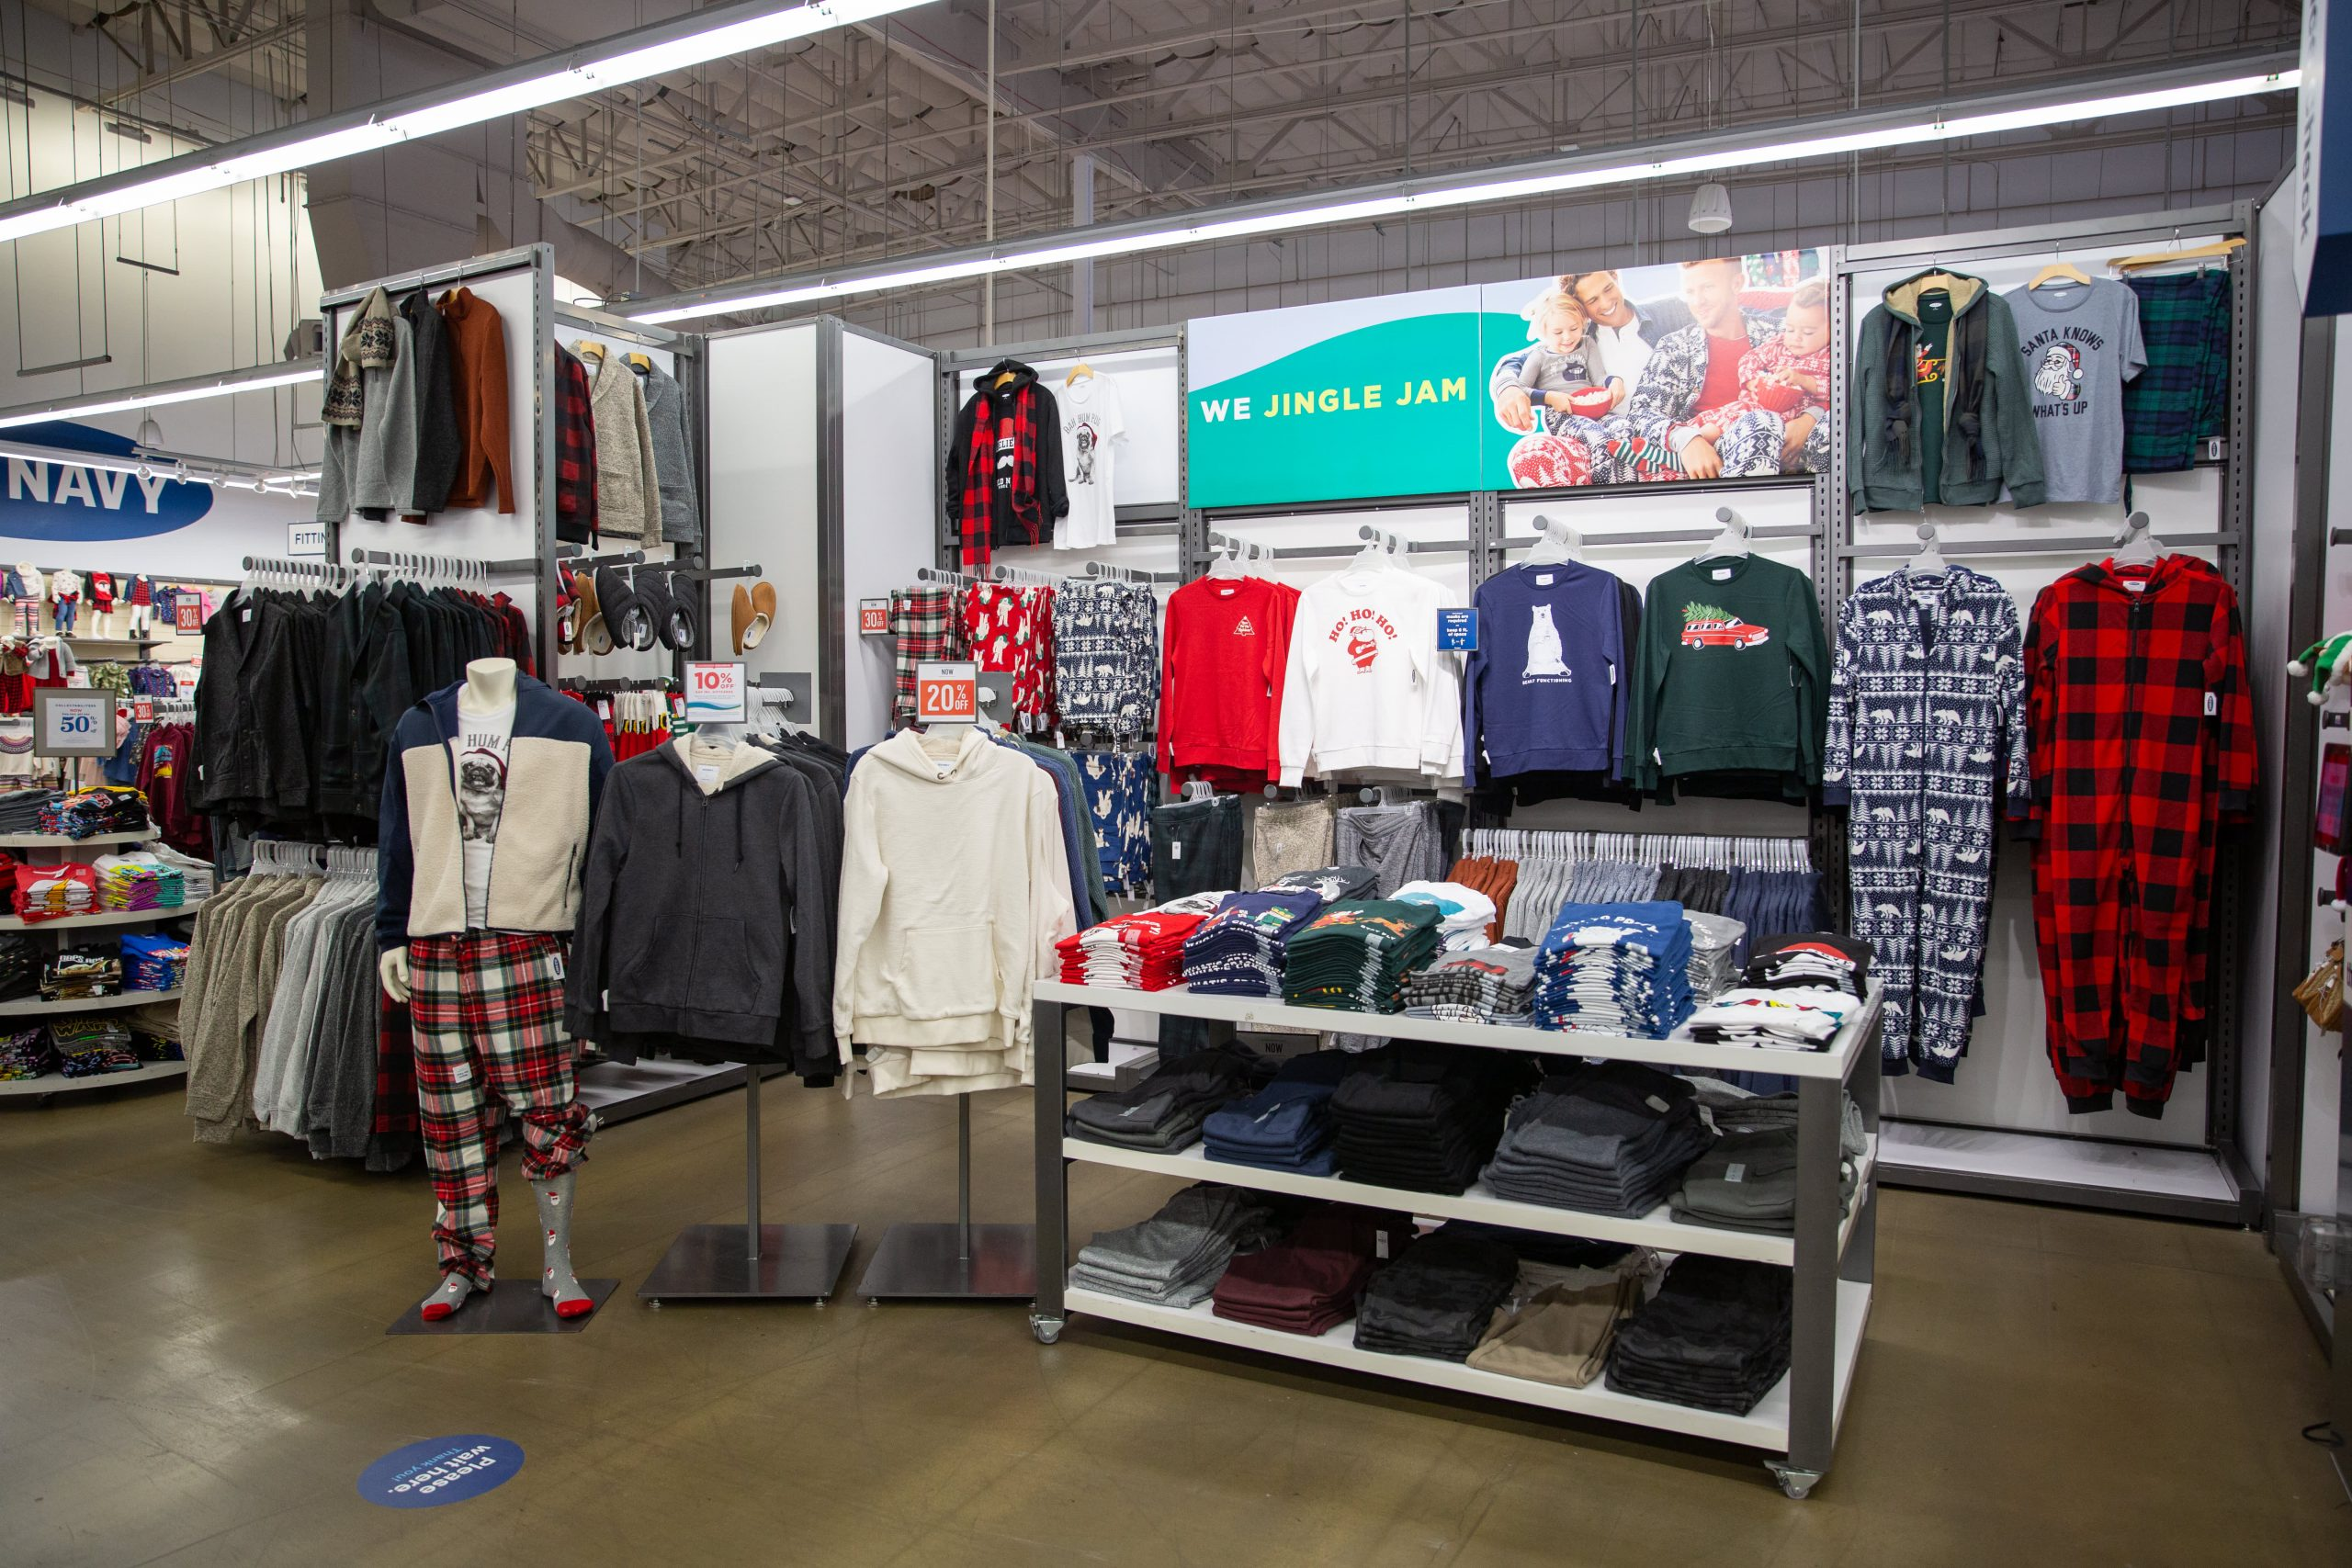 The athleisure market heats up as customers need consolation